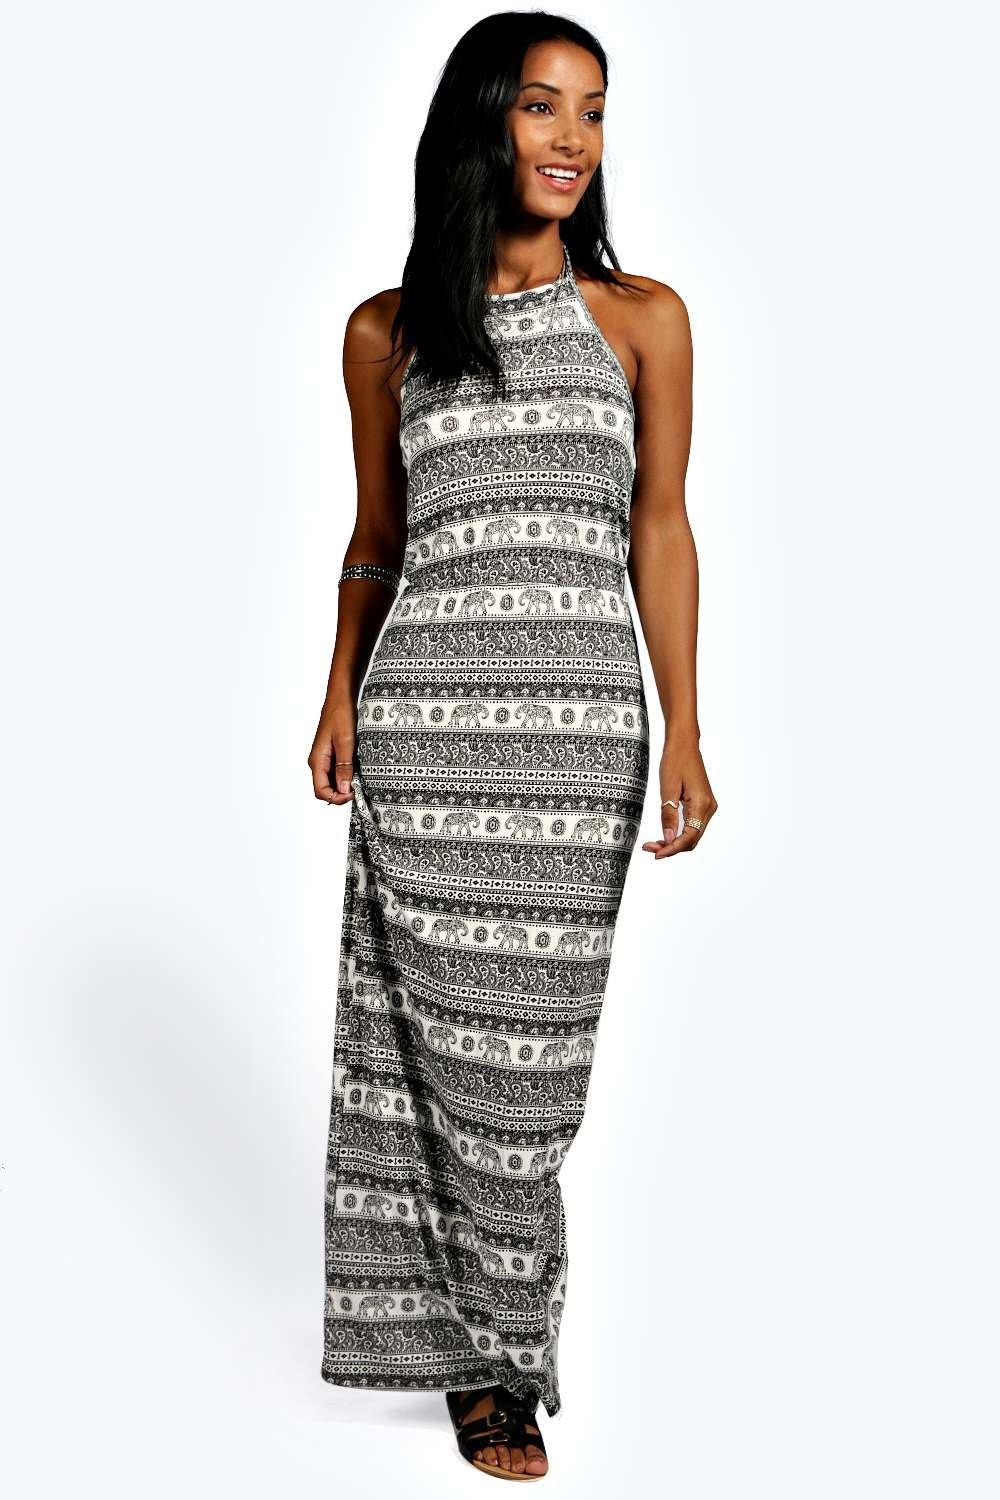 Millie Elephant Halter Maxi Dress